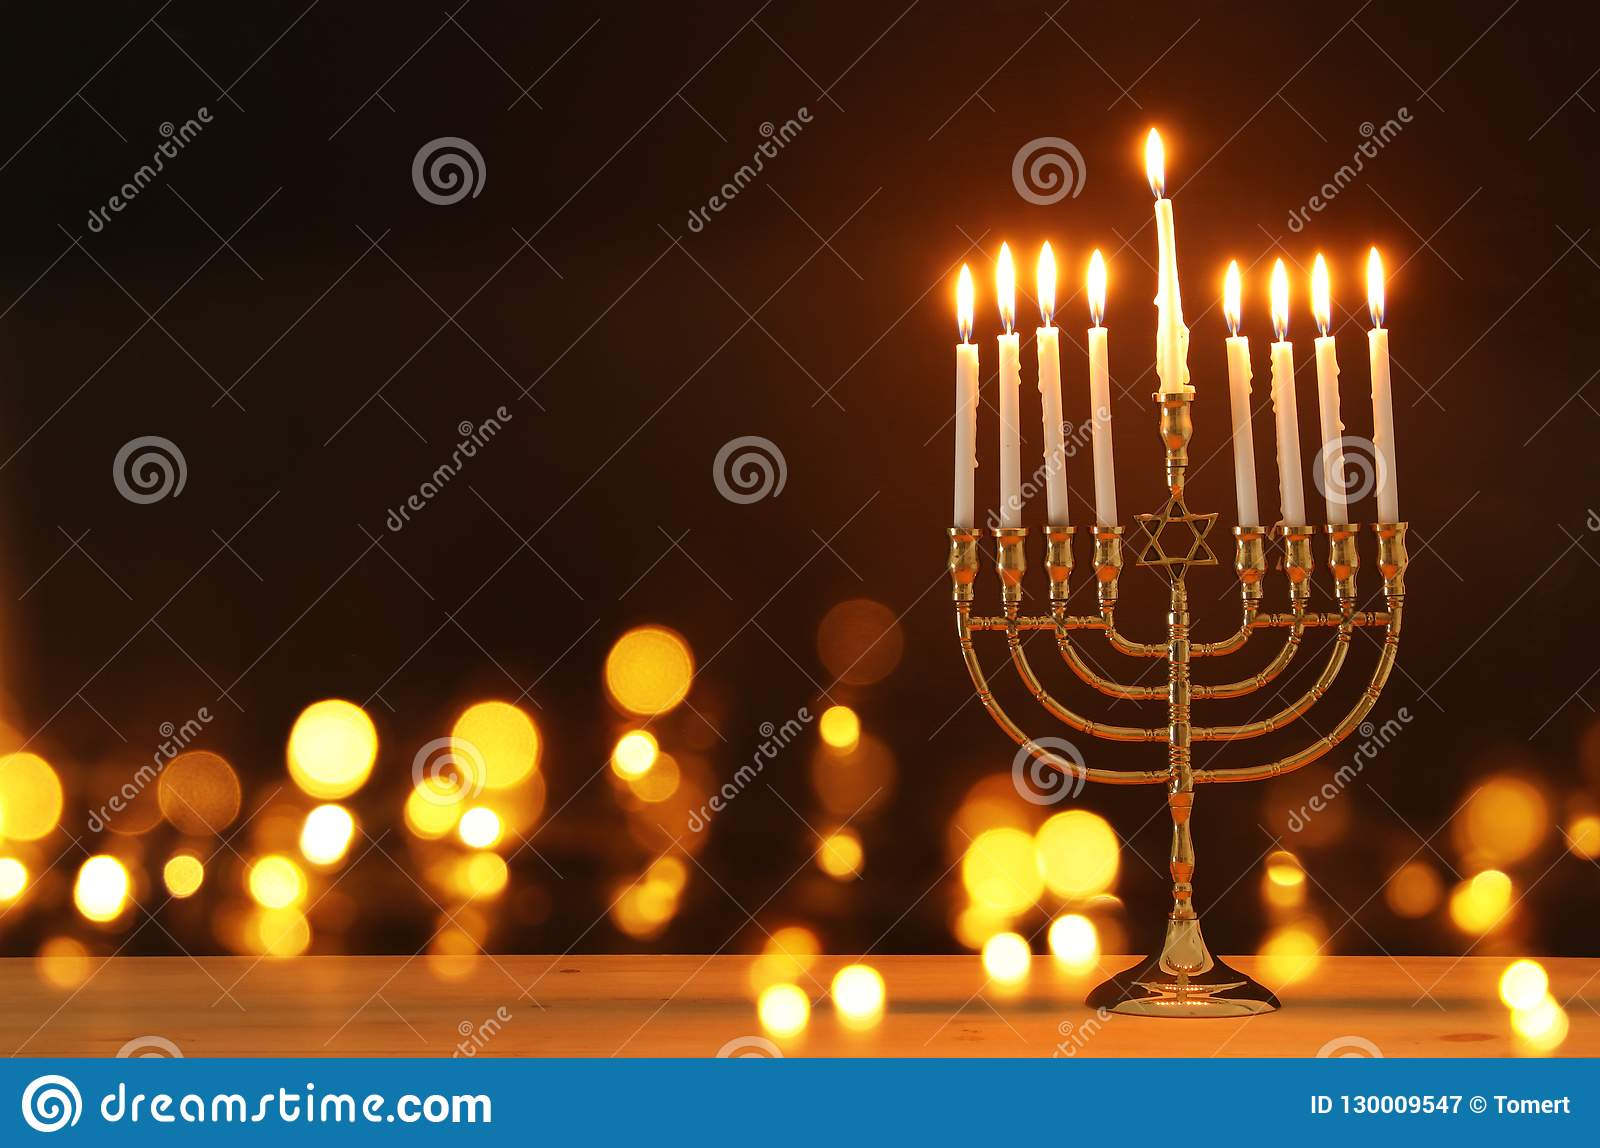 image of jewish holiday Hanukkah background with menorah & x28;traditional candelabra& x29; and candles.